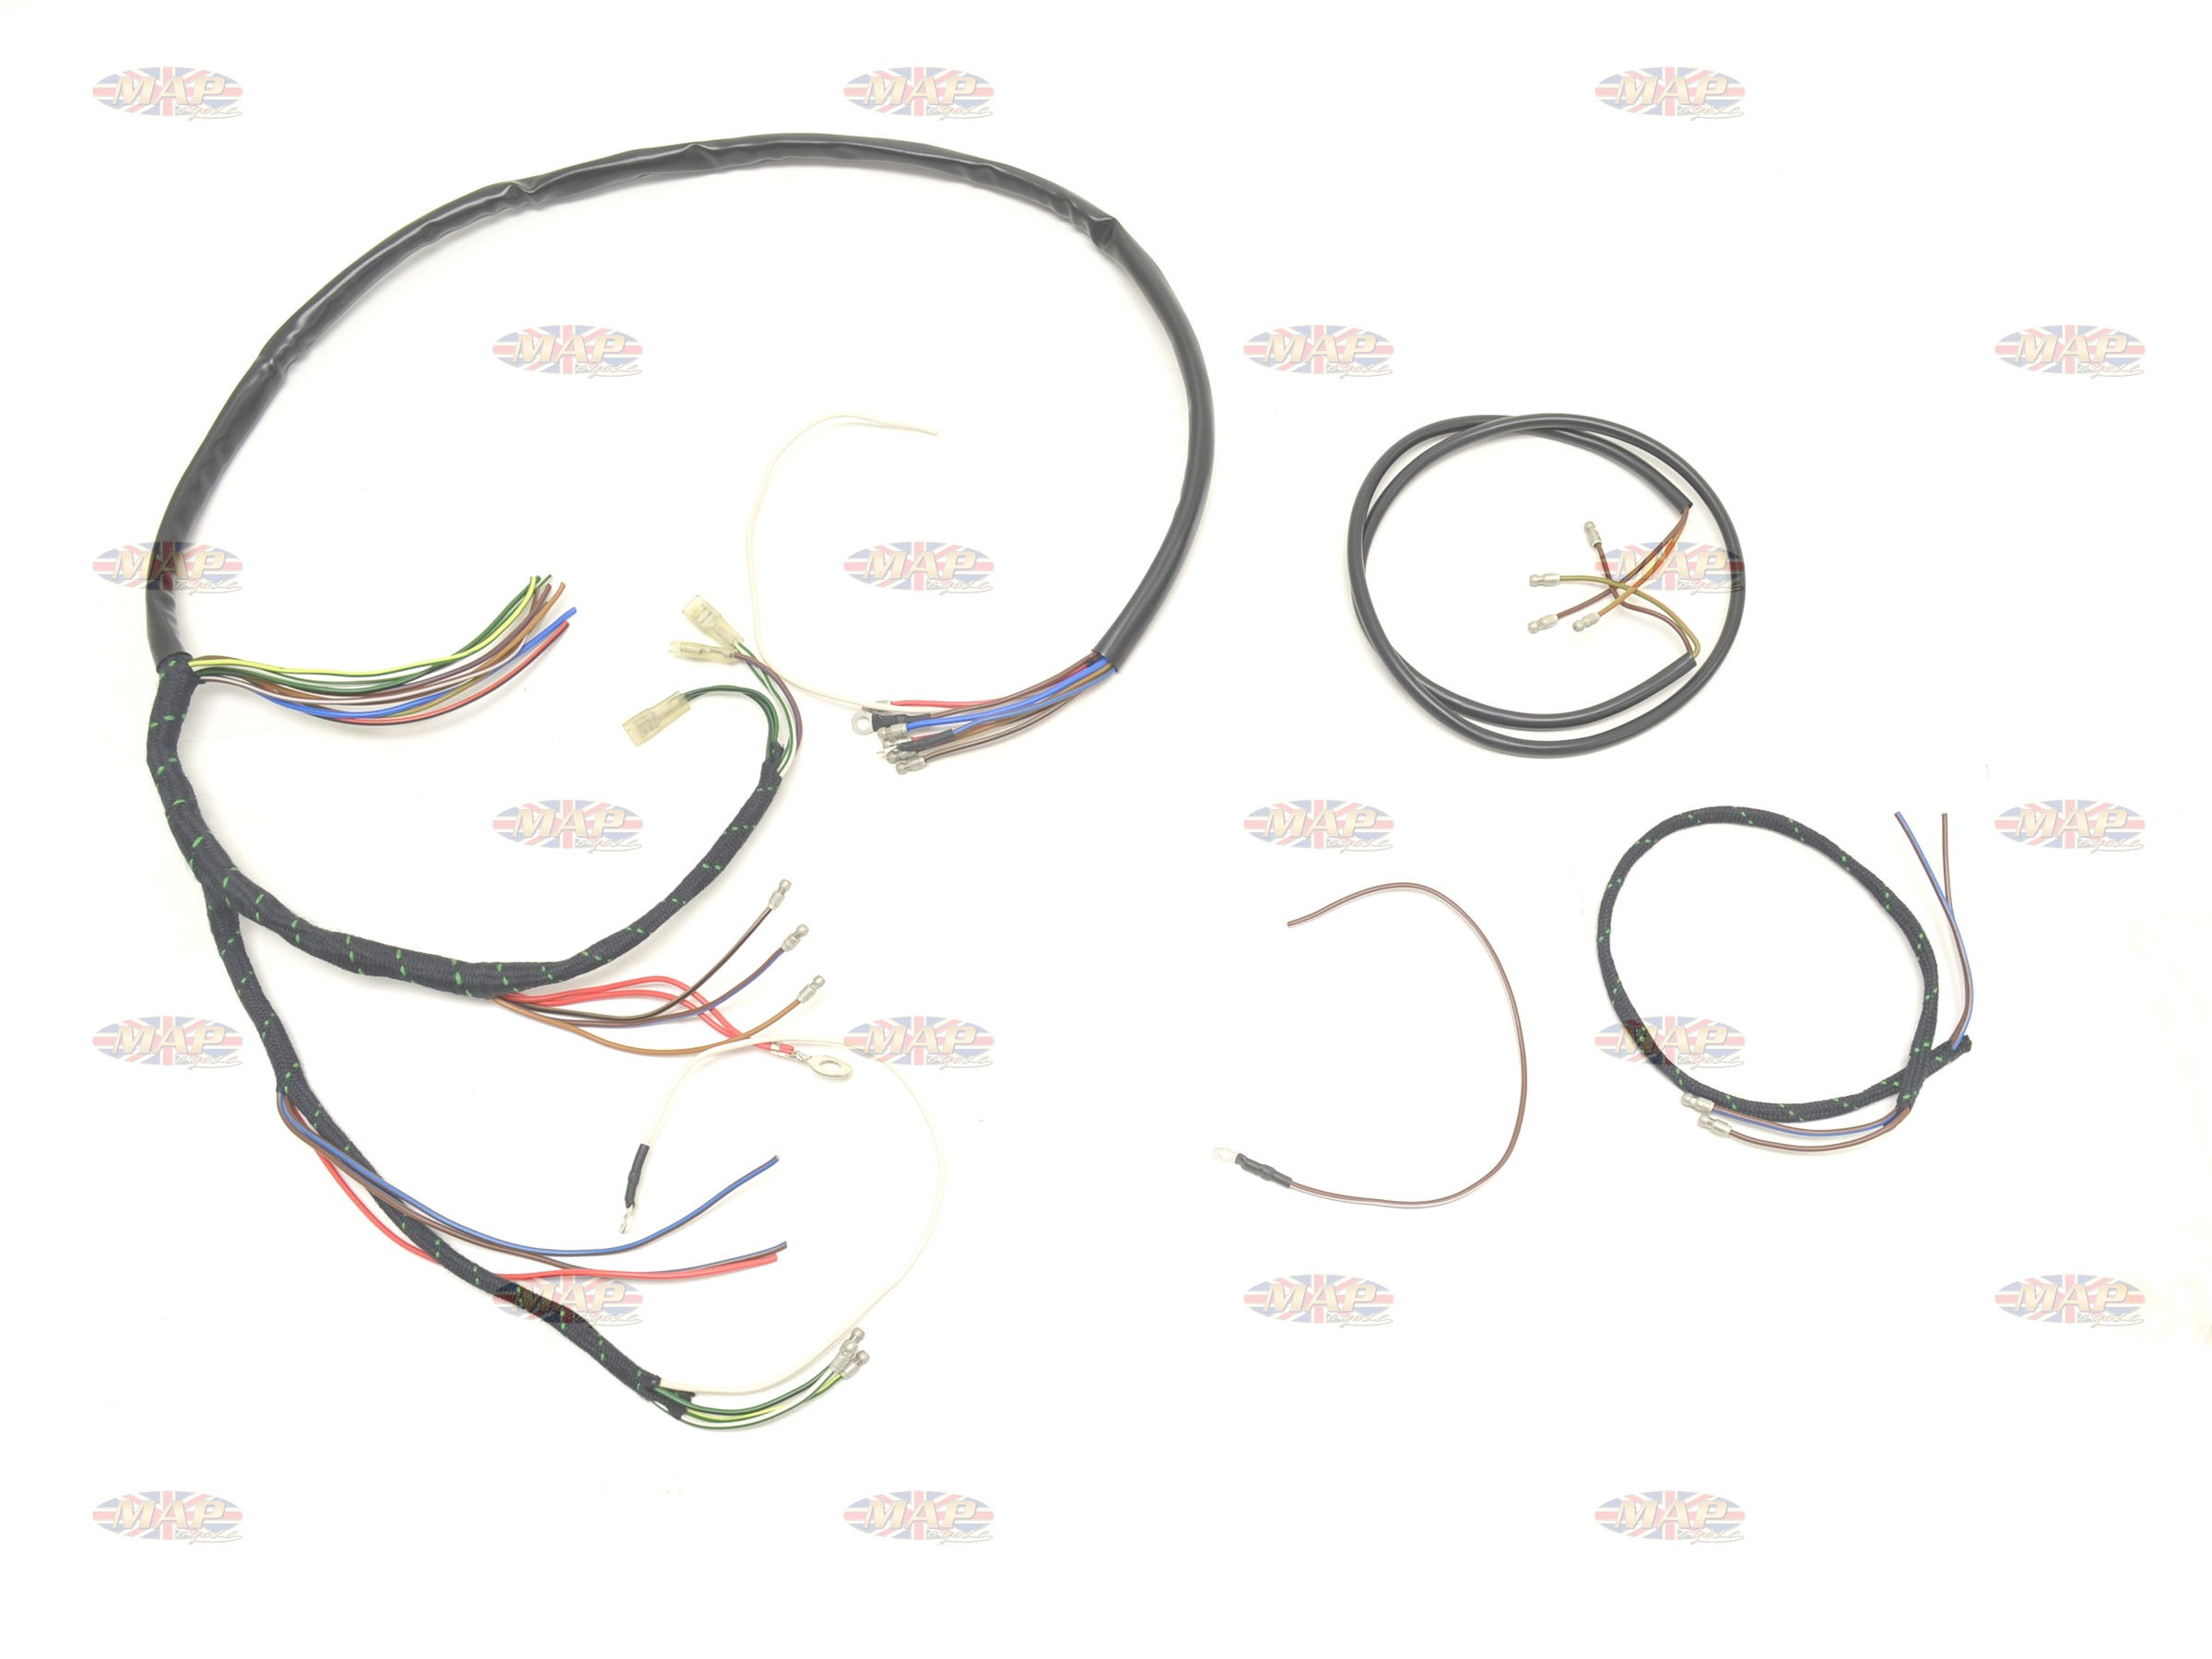 Tr6 Wiring Harness Schematics Diagram 1960 Triumph 62 T120 Uk Made High Quality Honda Accord